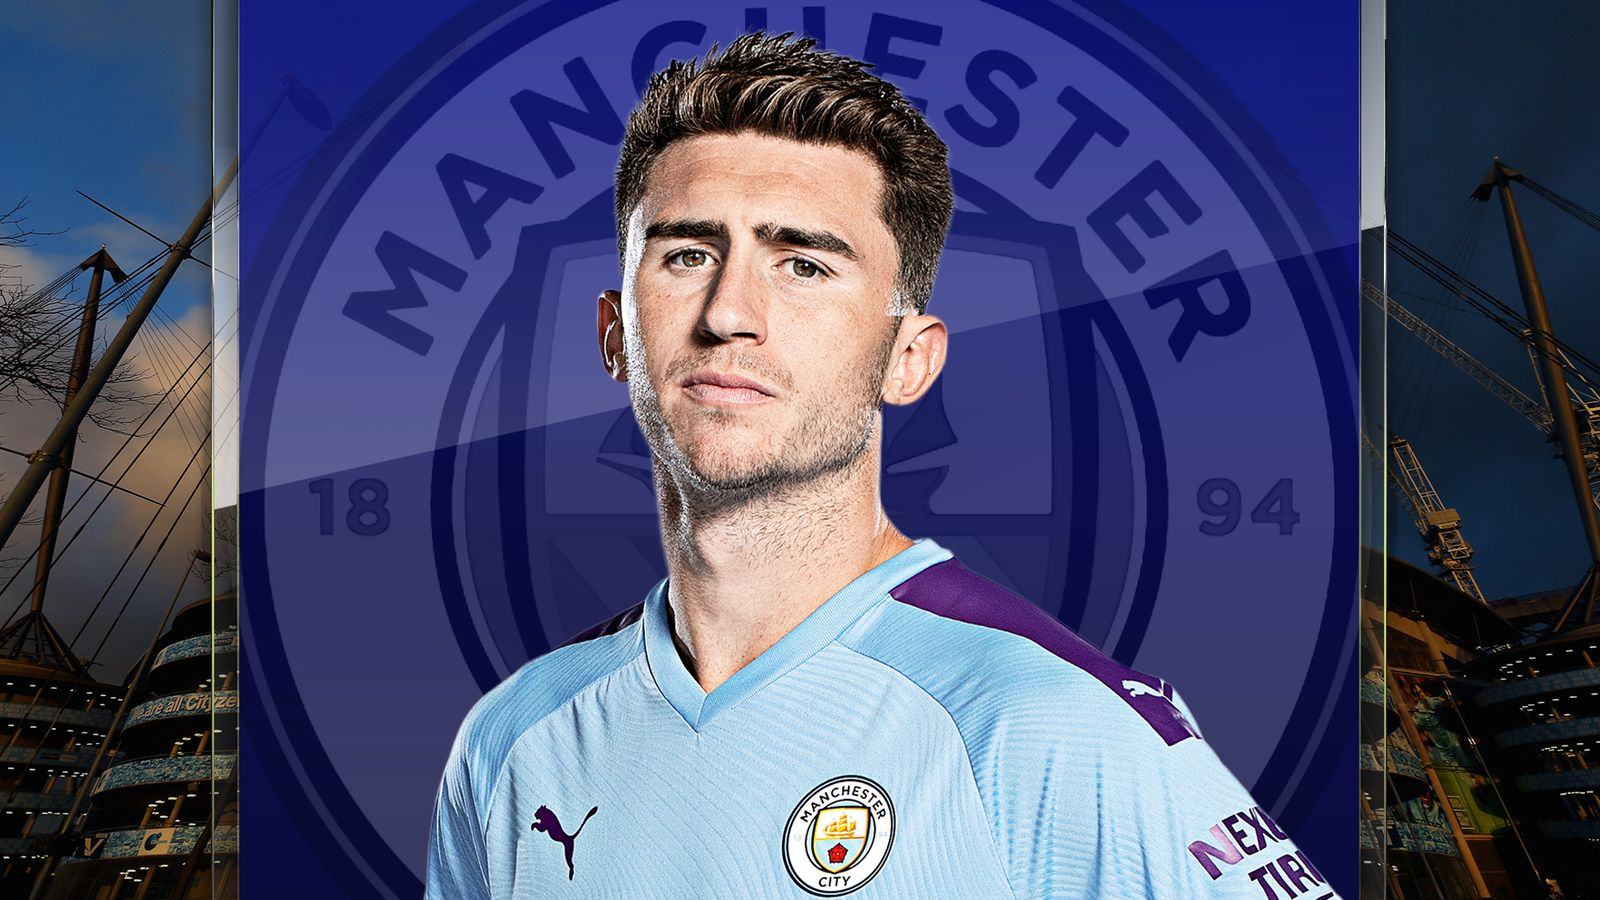 Manchester City defender Aymeric Laporte urges health to come ...